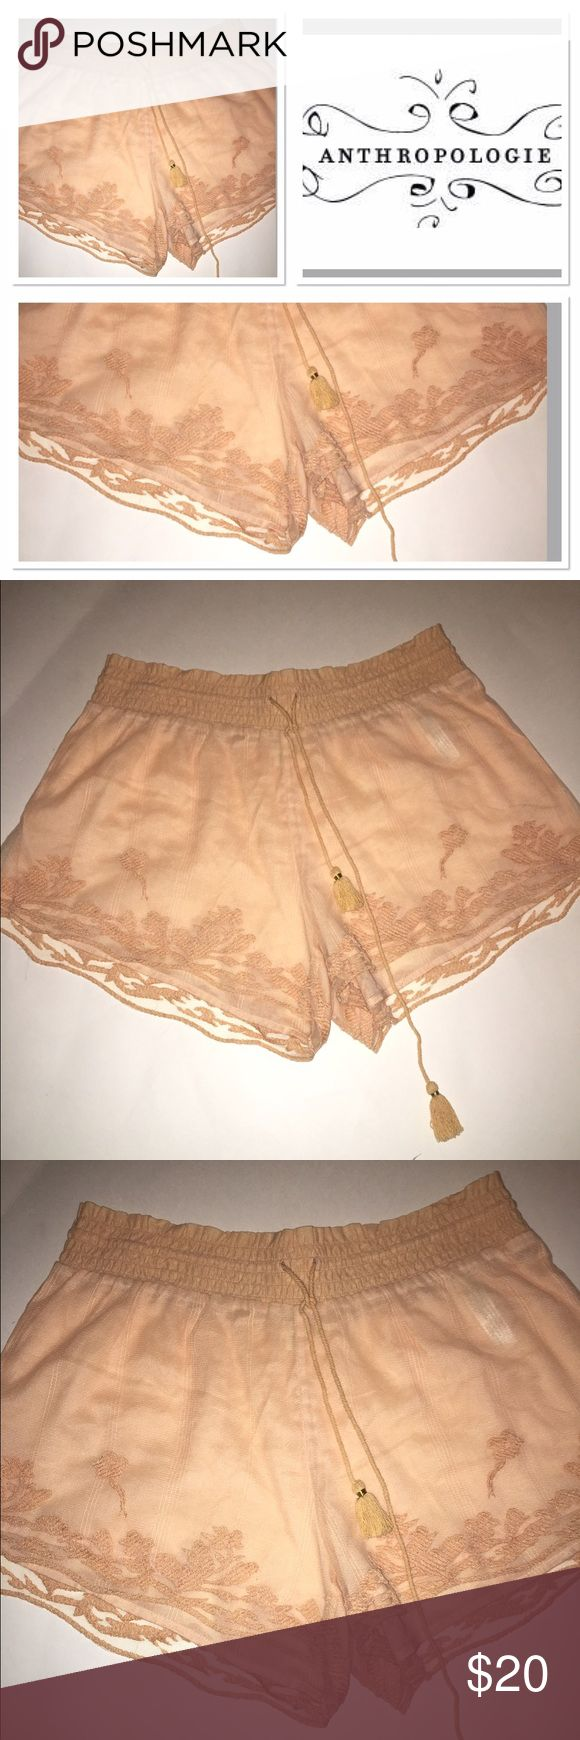 NWOT Anthropologie sheer peach shorts Brand new Anthropologie sheer peach shorts very sexy Anthropologie Shorts